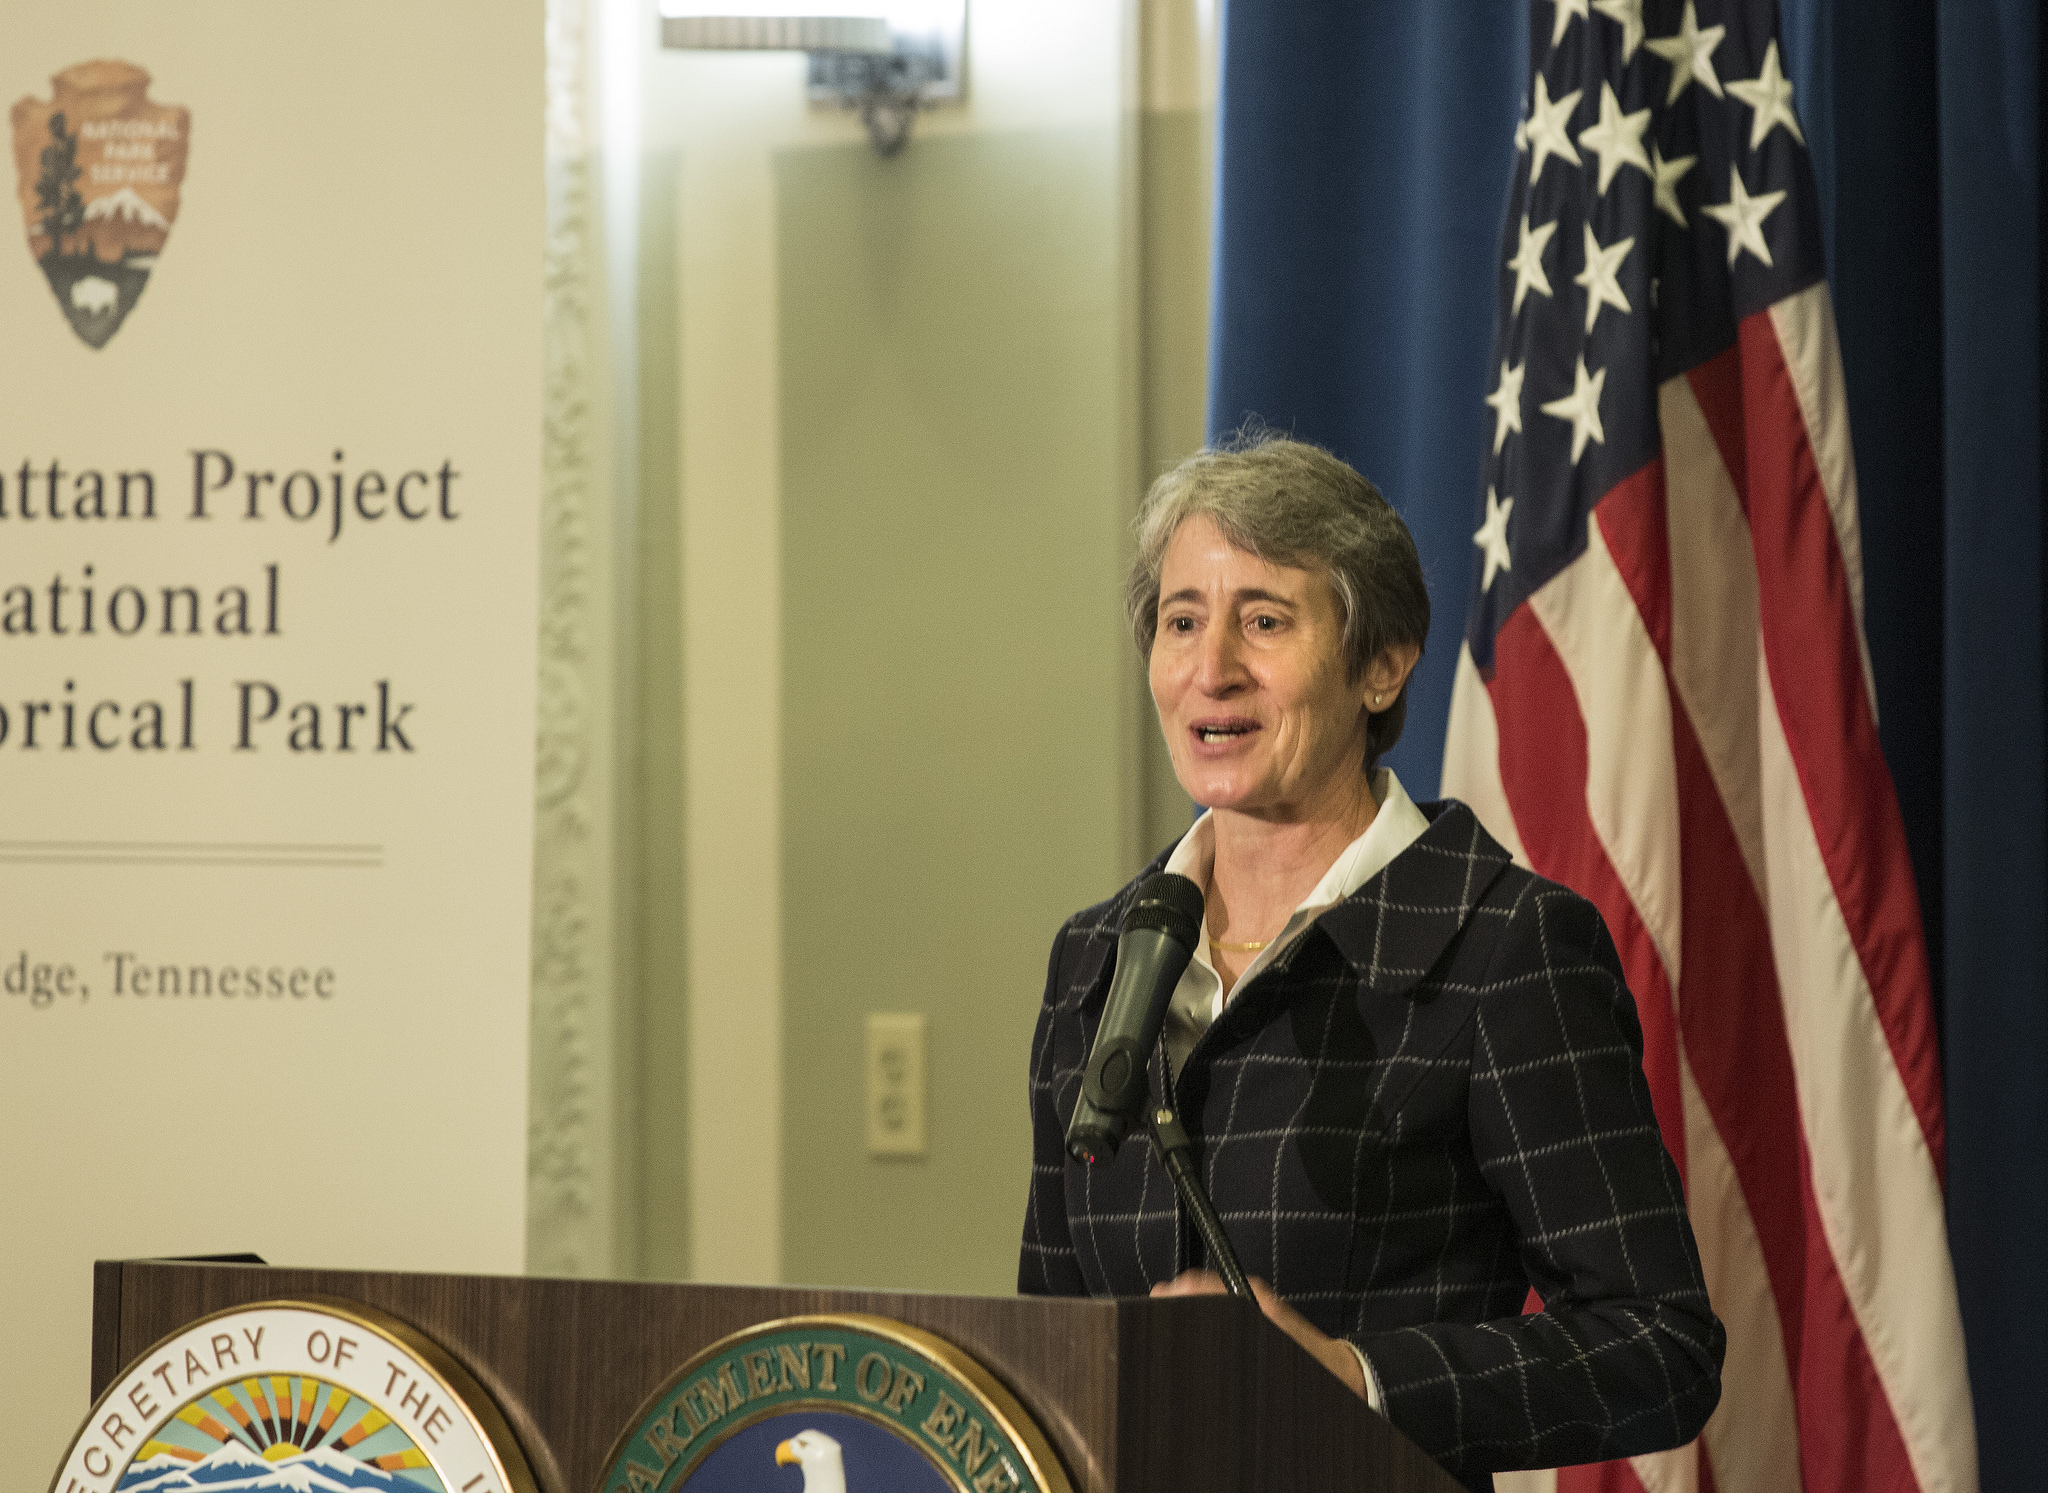 PM Secretary Jewell